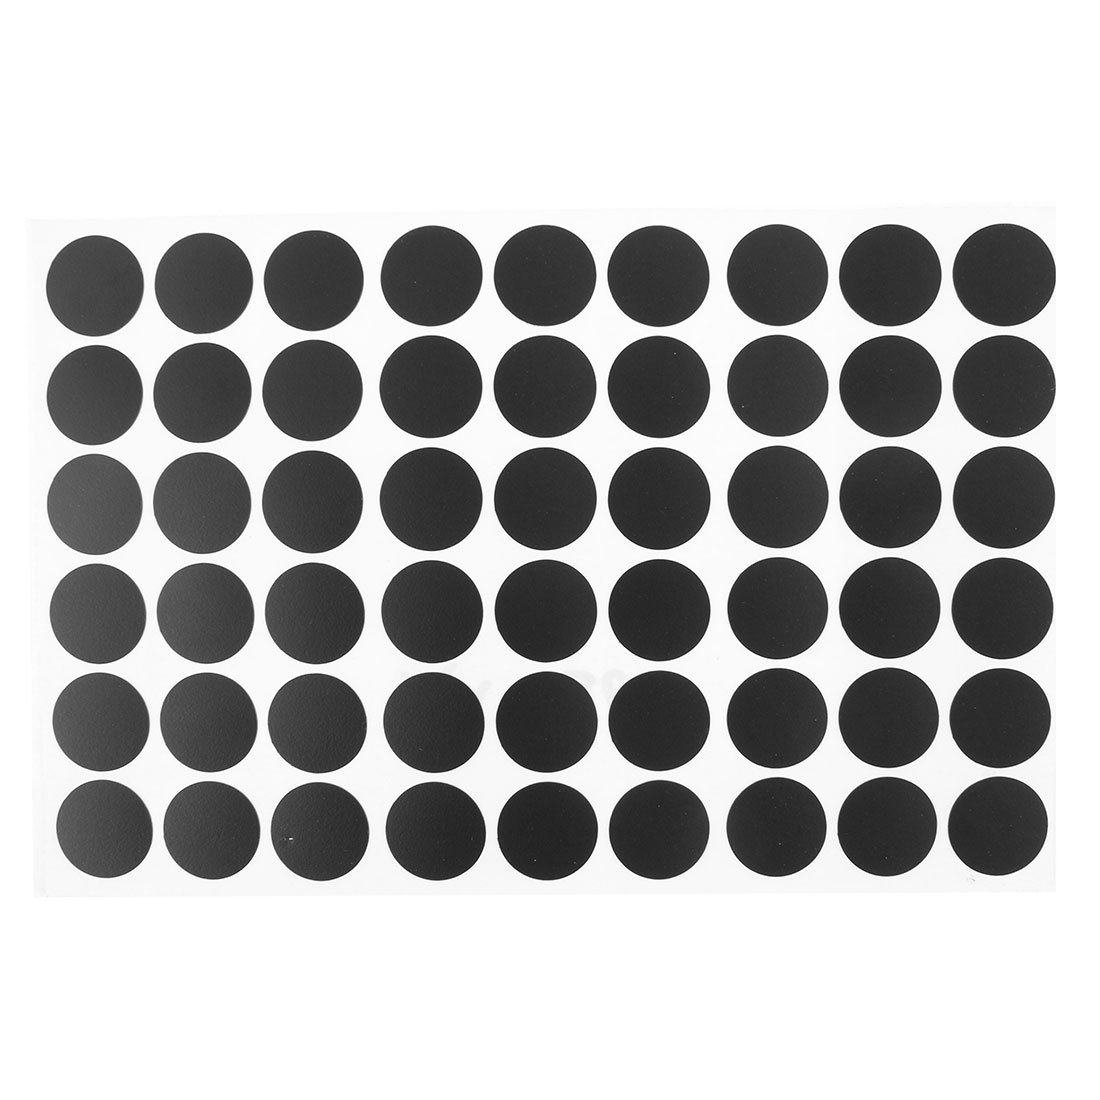 uxcell® Home Table Self-Adhesive Screw Hole Covers Caps Stickers 54 in 1 Black US-SA-AJD-132018